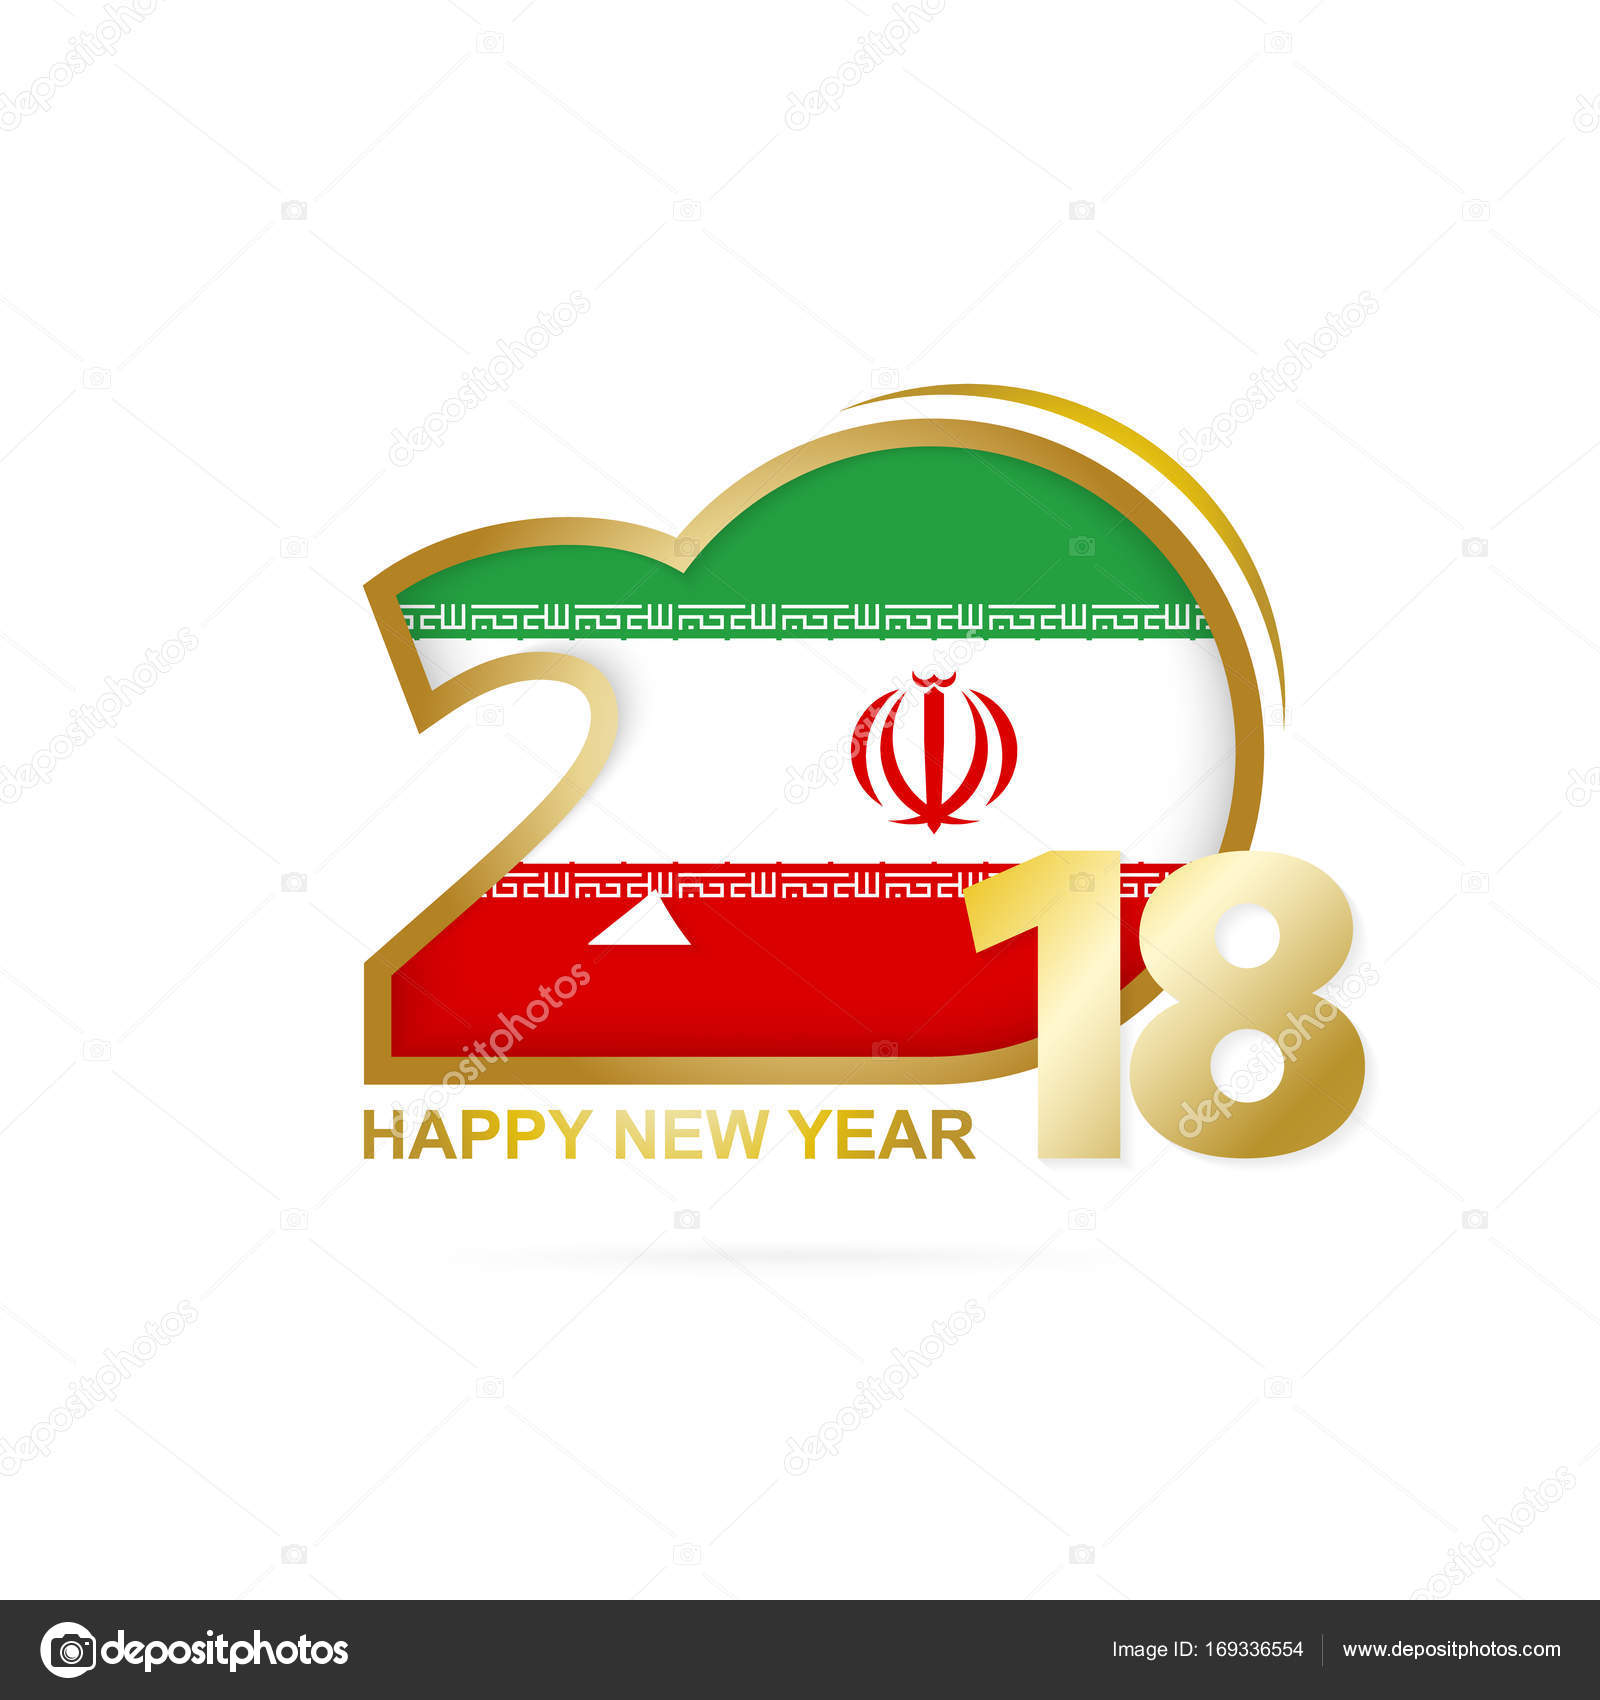 Year 2018 with iran flag pattern happy new year design stock year 2018 with iran flag pattern happy new year design stock vector buycottarizona Choice Image